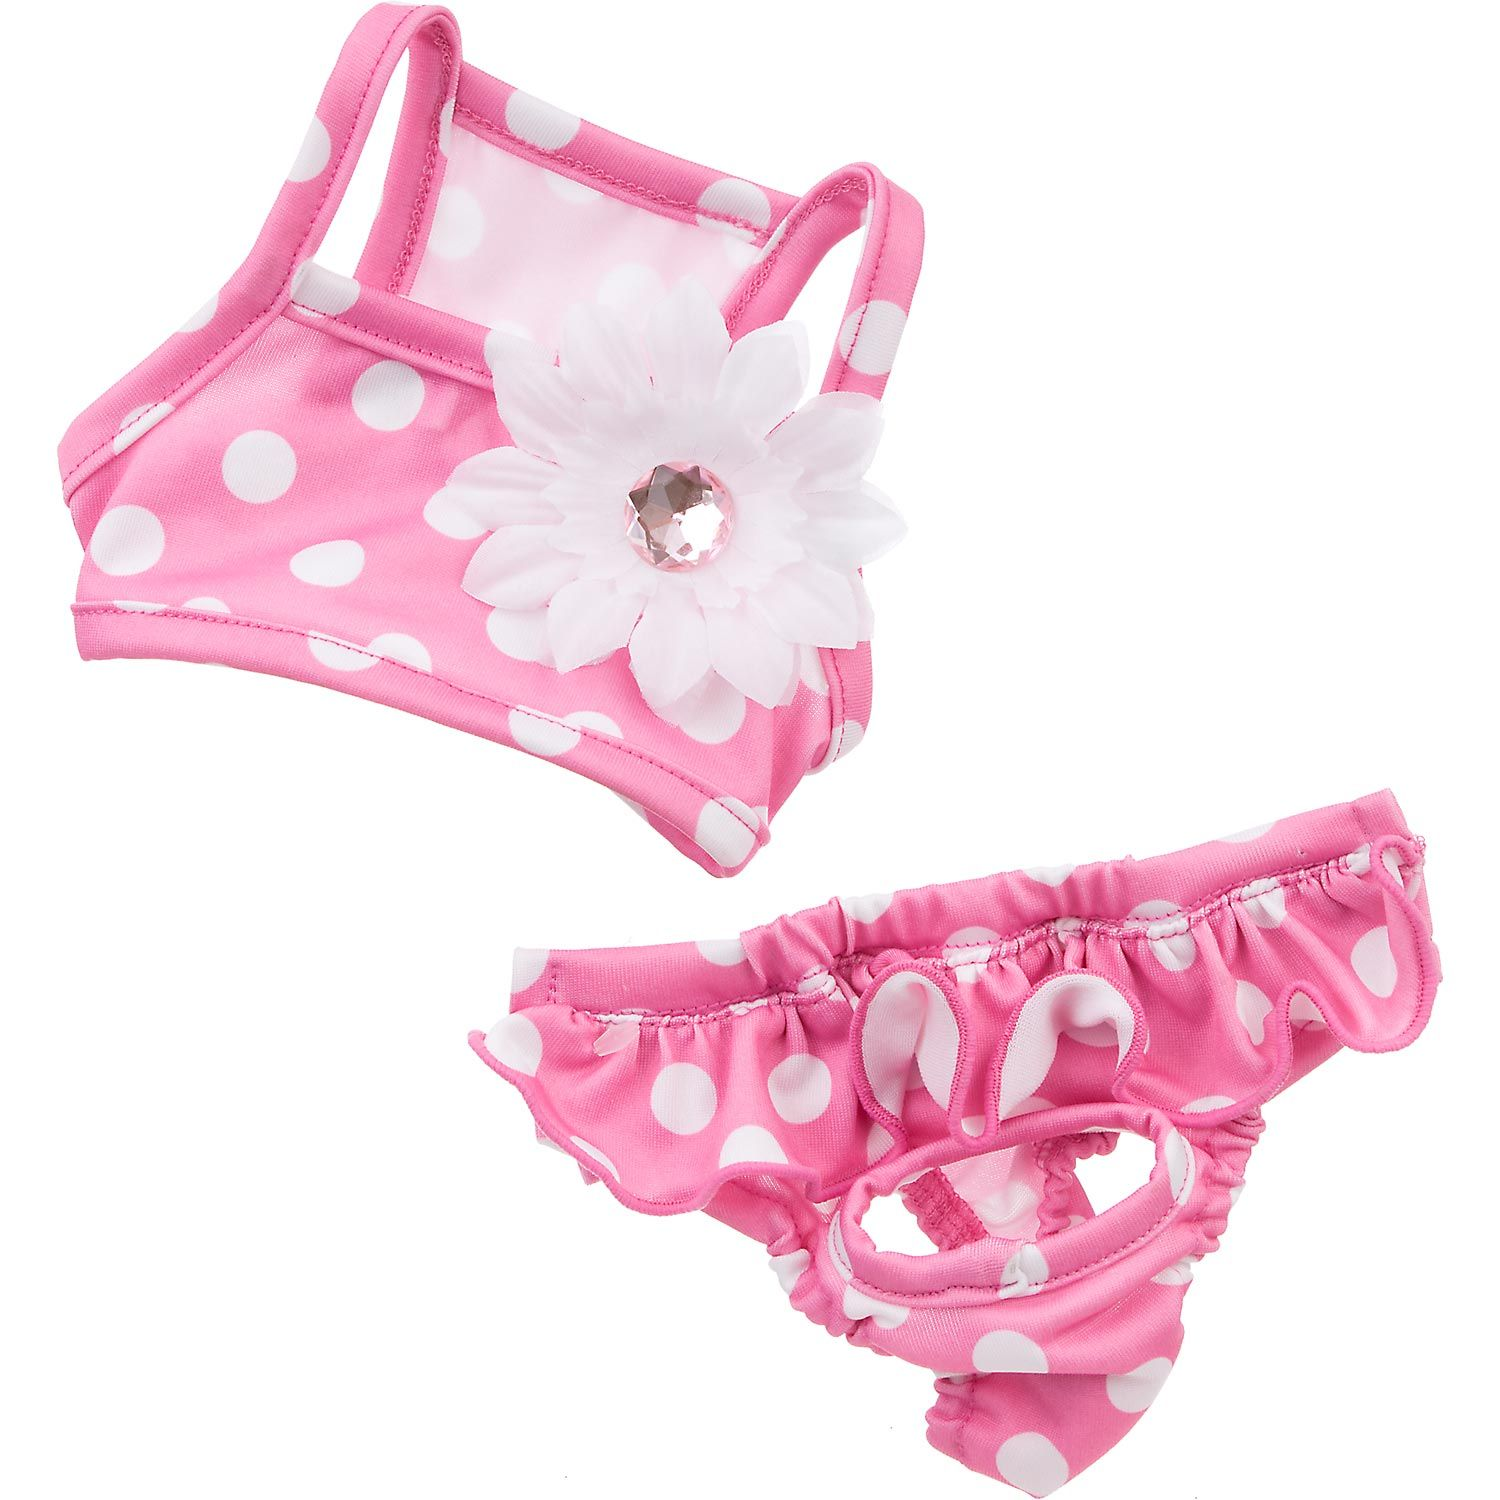 petco smoochie pooch pink polka dot u0026 flower dog layla